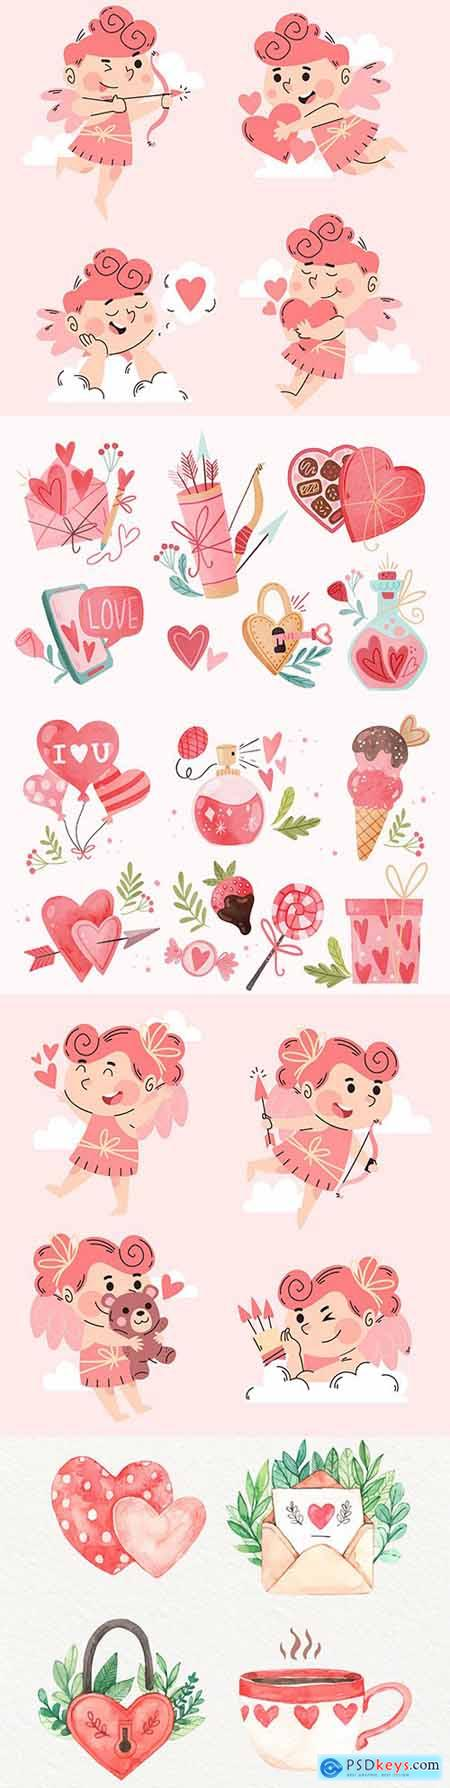 Valentines Day romantic cupid and watercolor elements for design